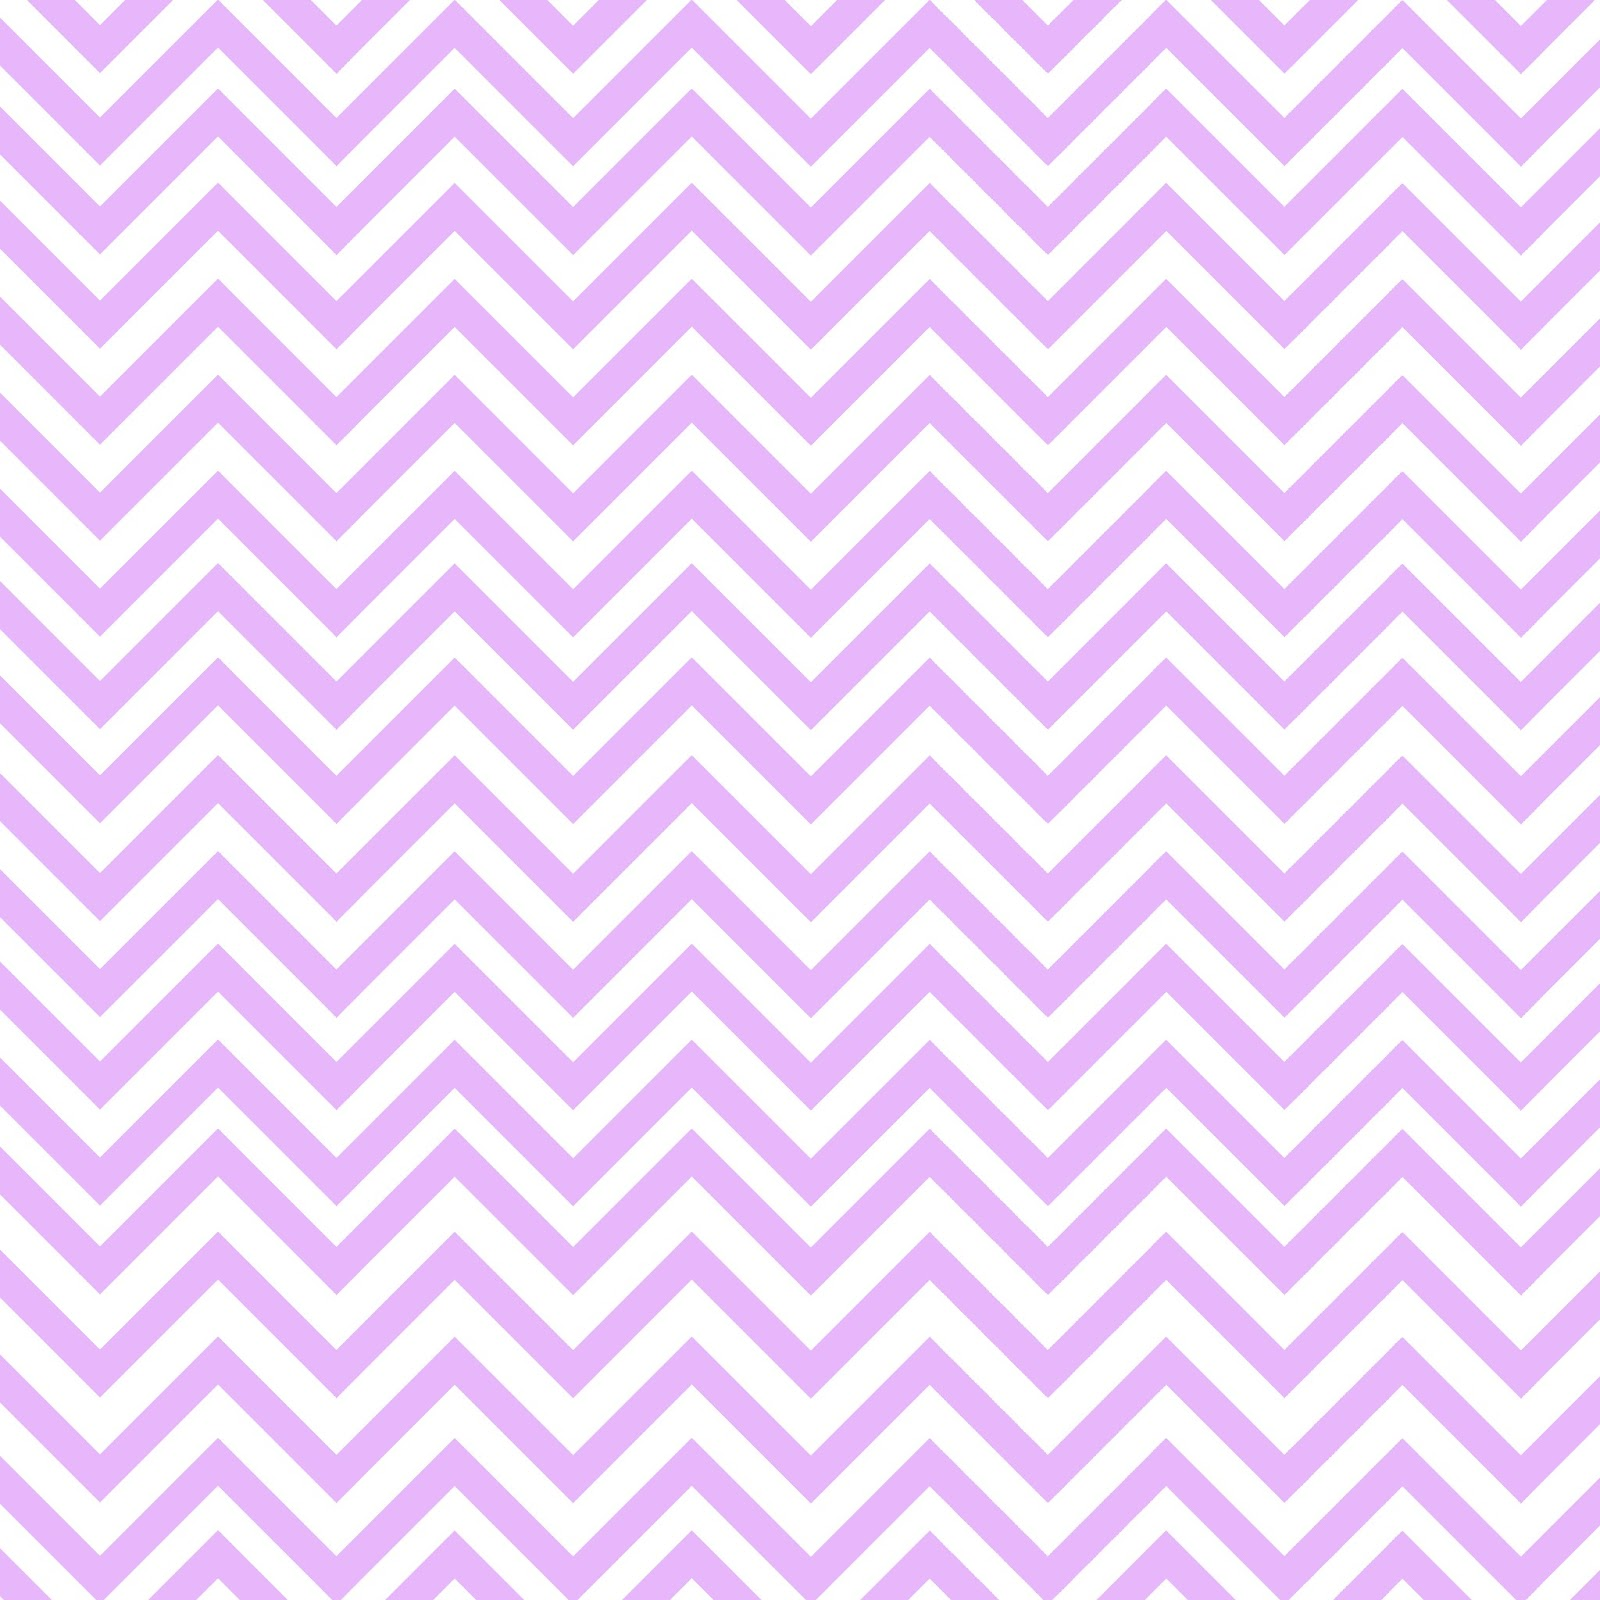 purple ombre chevron background viewing gallery